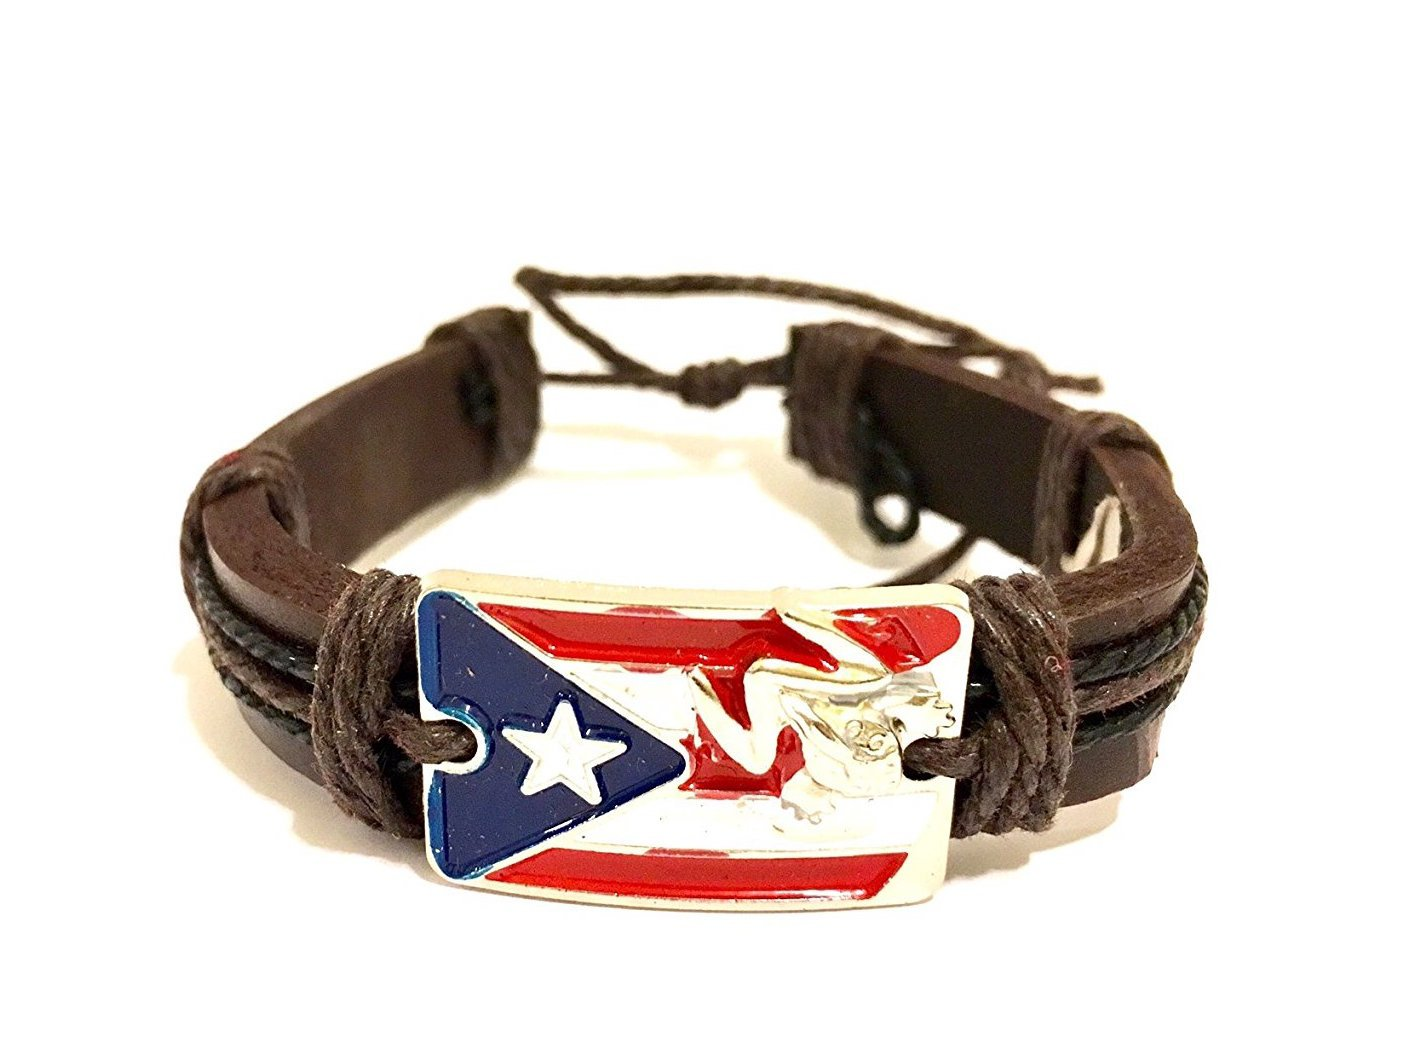 Boricua, Puerto Rico flag style wristband, Puerto Rican fashion bracelet leather tie up style by Unknown